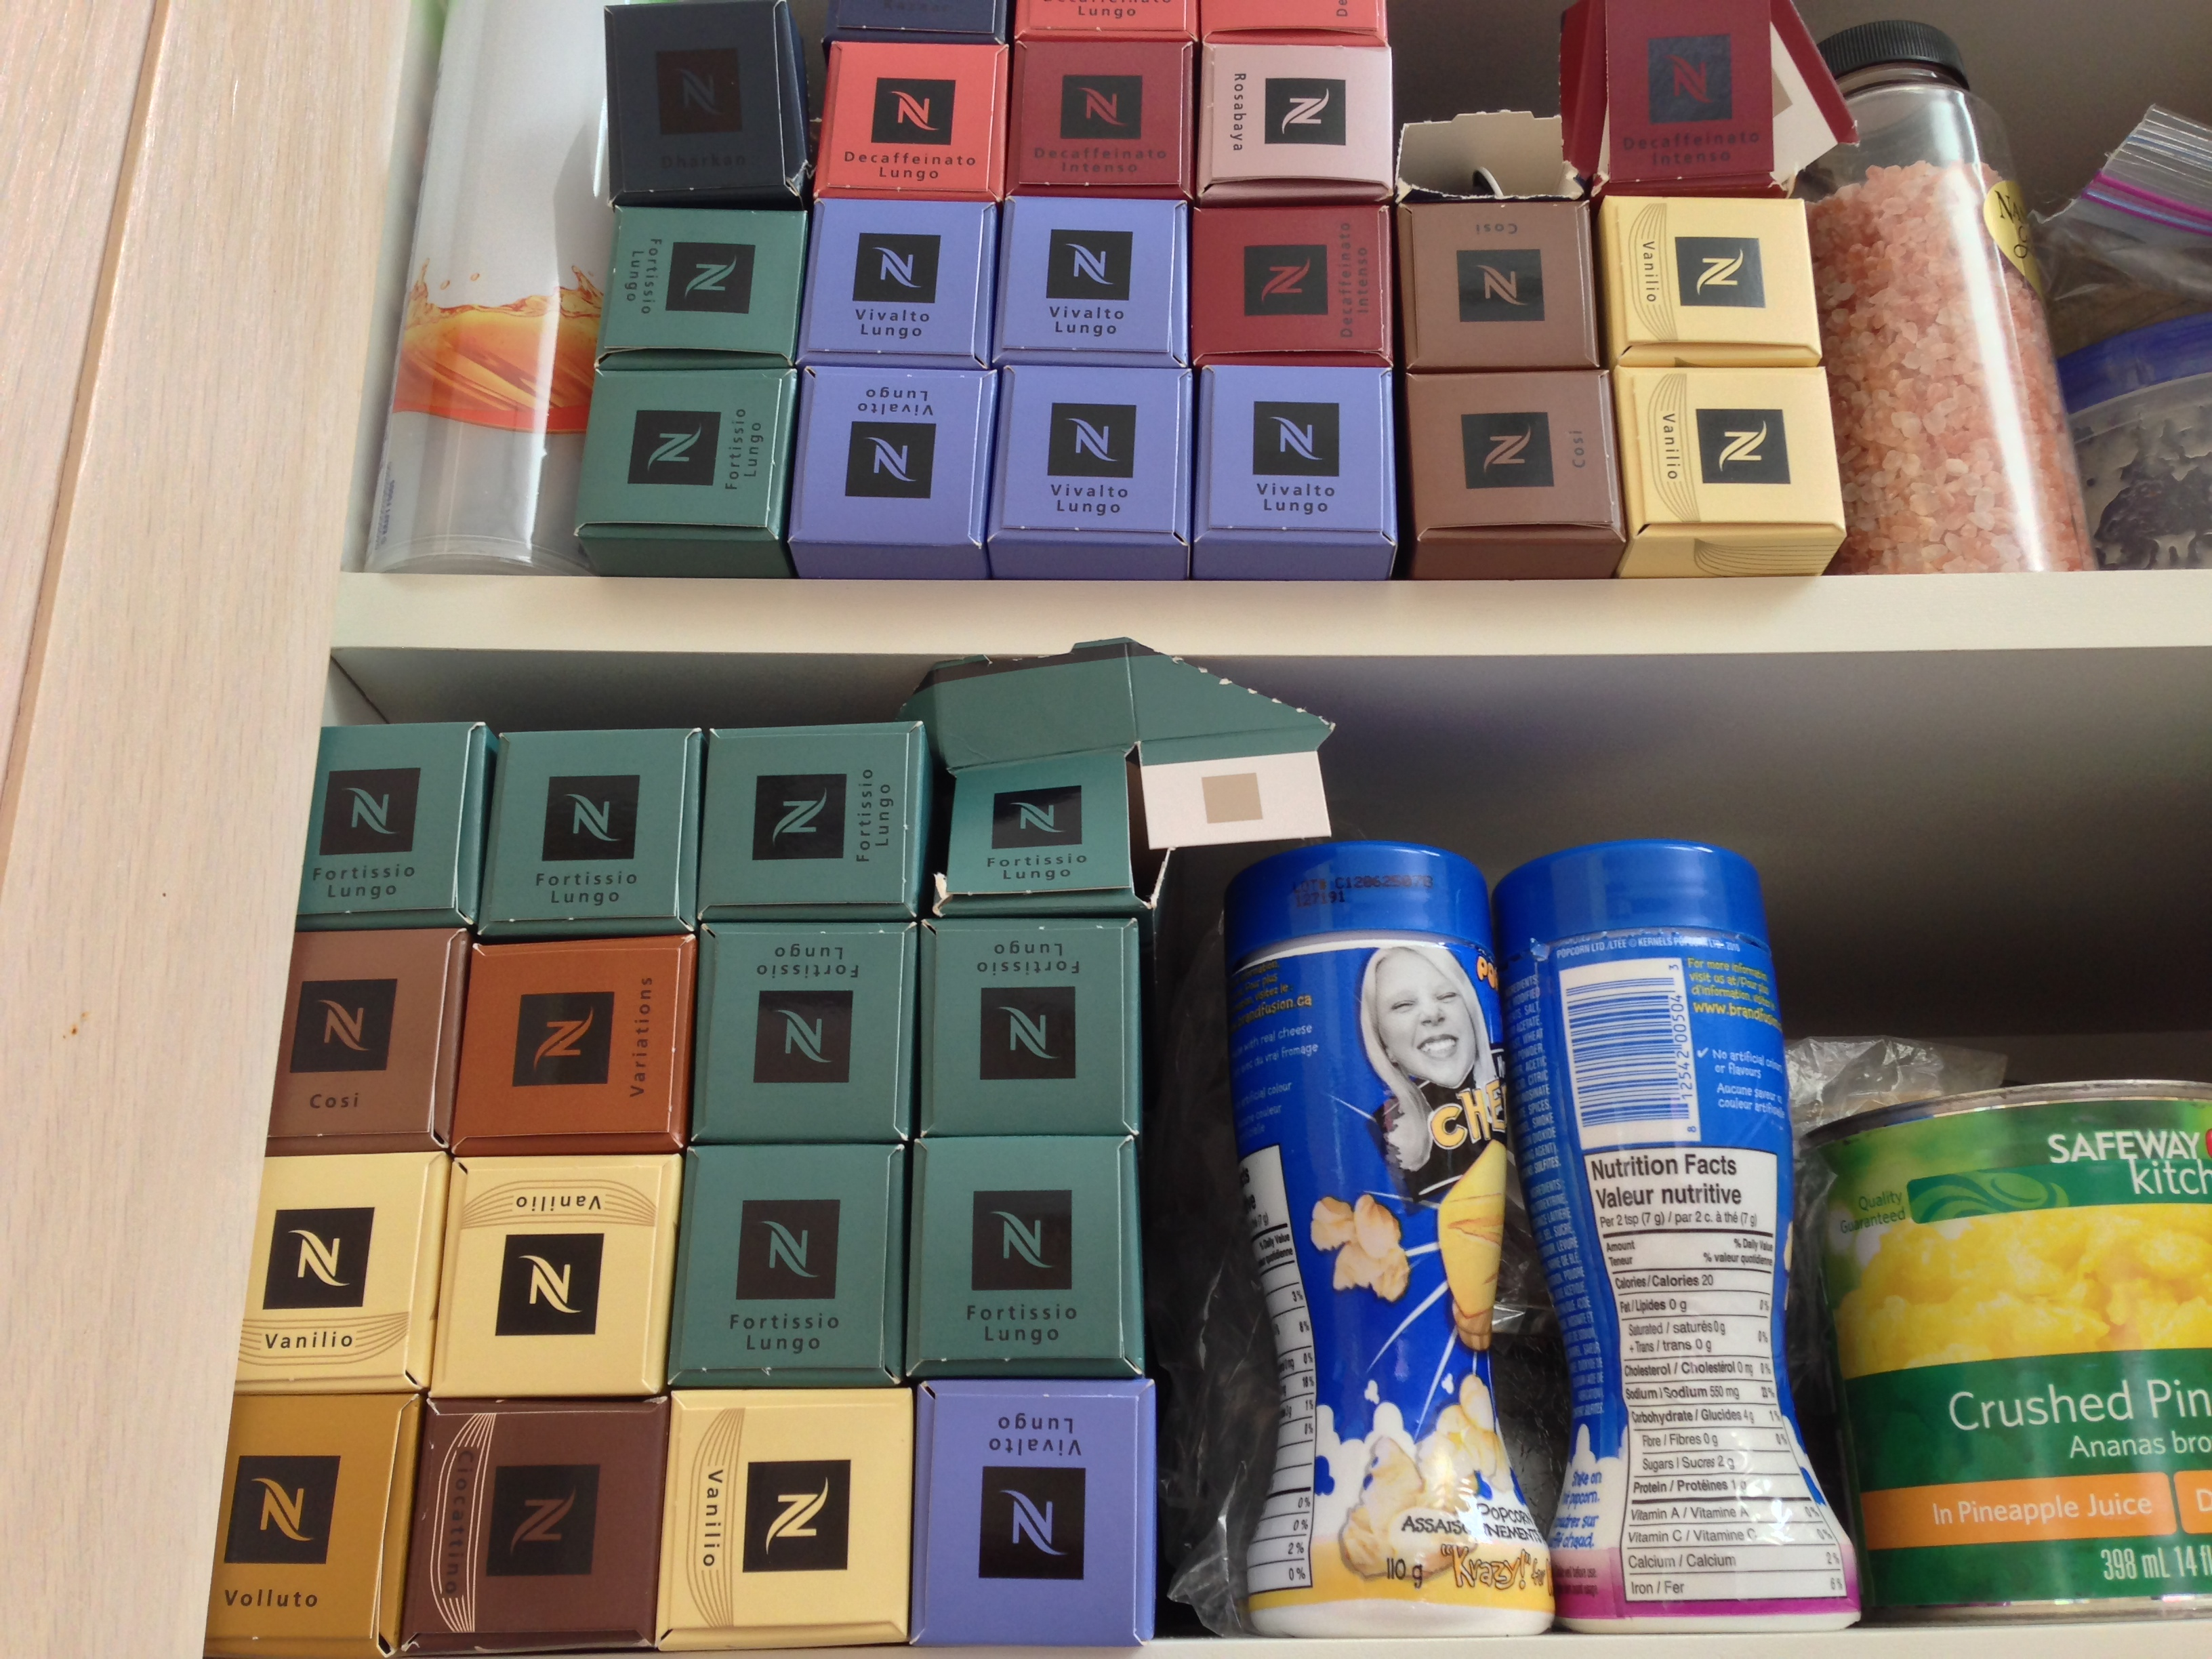 Okay Nespresso Time to Step Up Your Customer Service (case closed) — Tris  Hussey Marketing Strategist and Writer